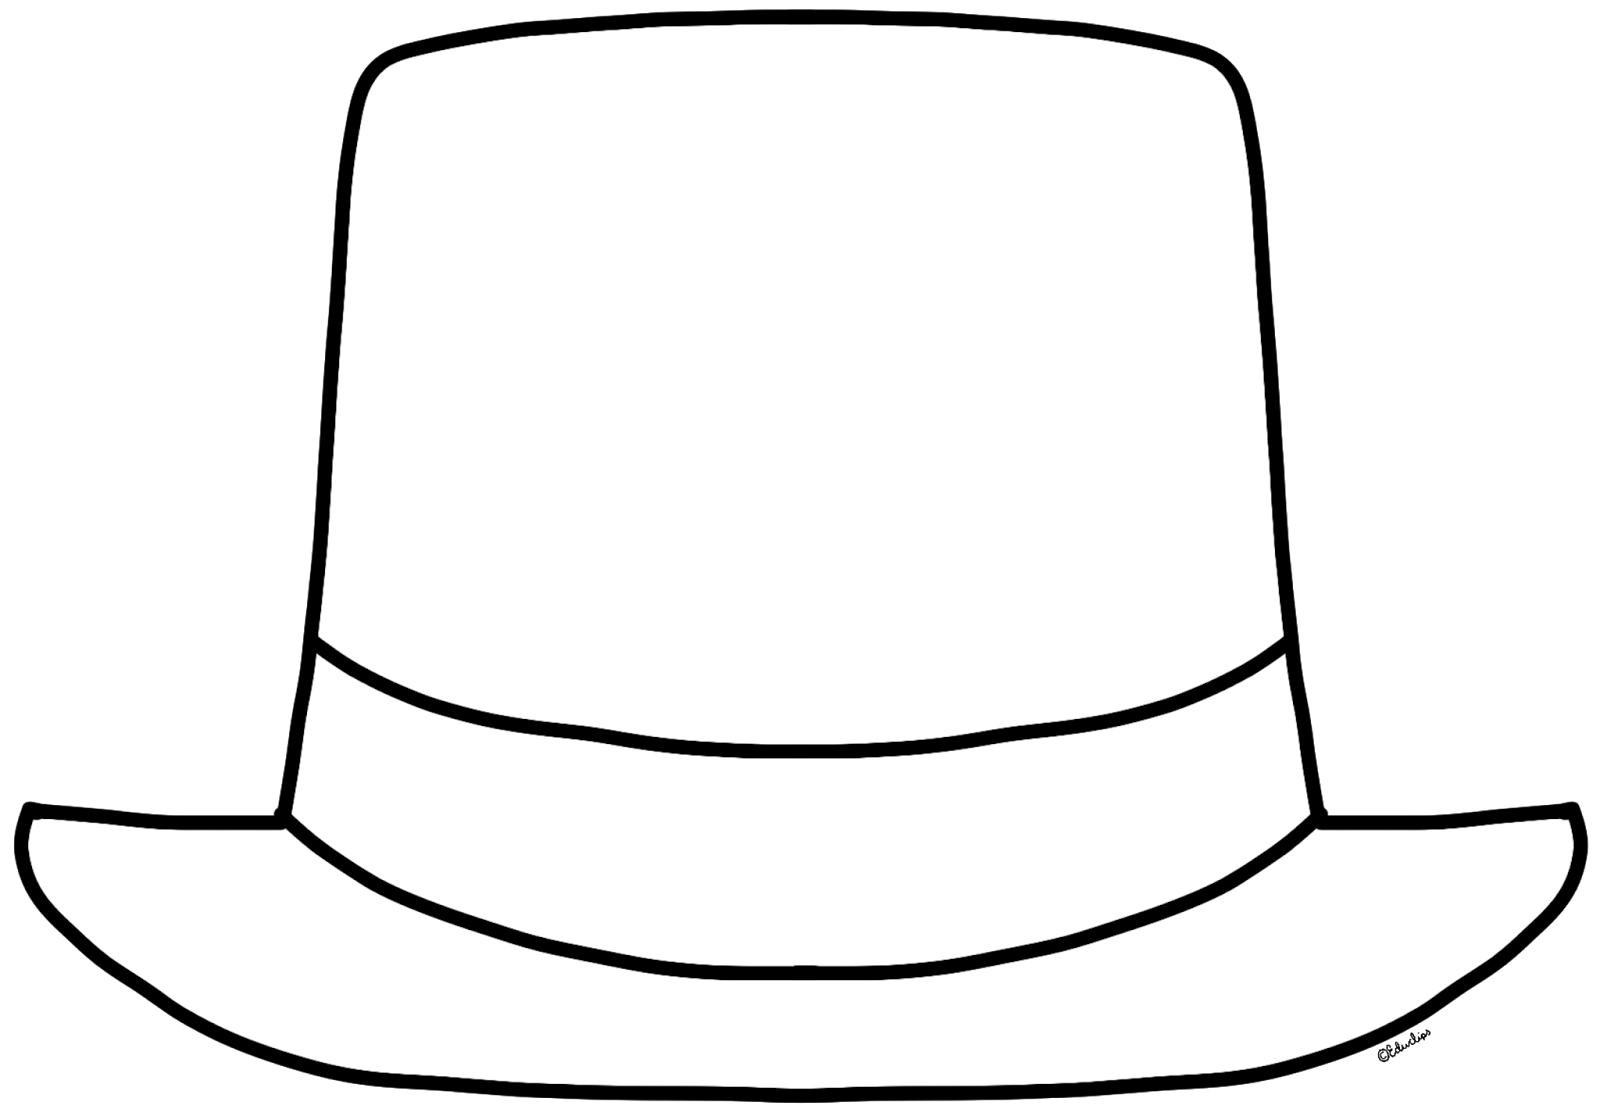 Black tophat & cane clipart clipart black and white Top Hat And Cane Clipart | Free download best Top Hat And Cane ... clipart black and white